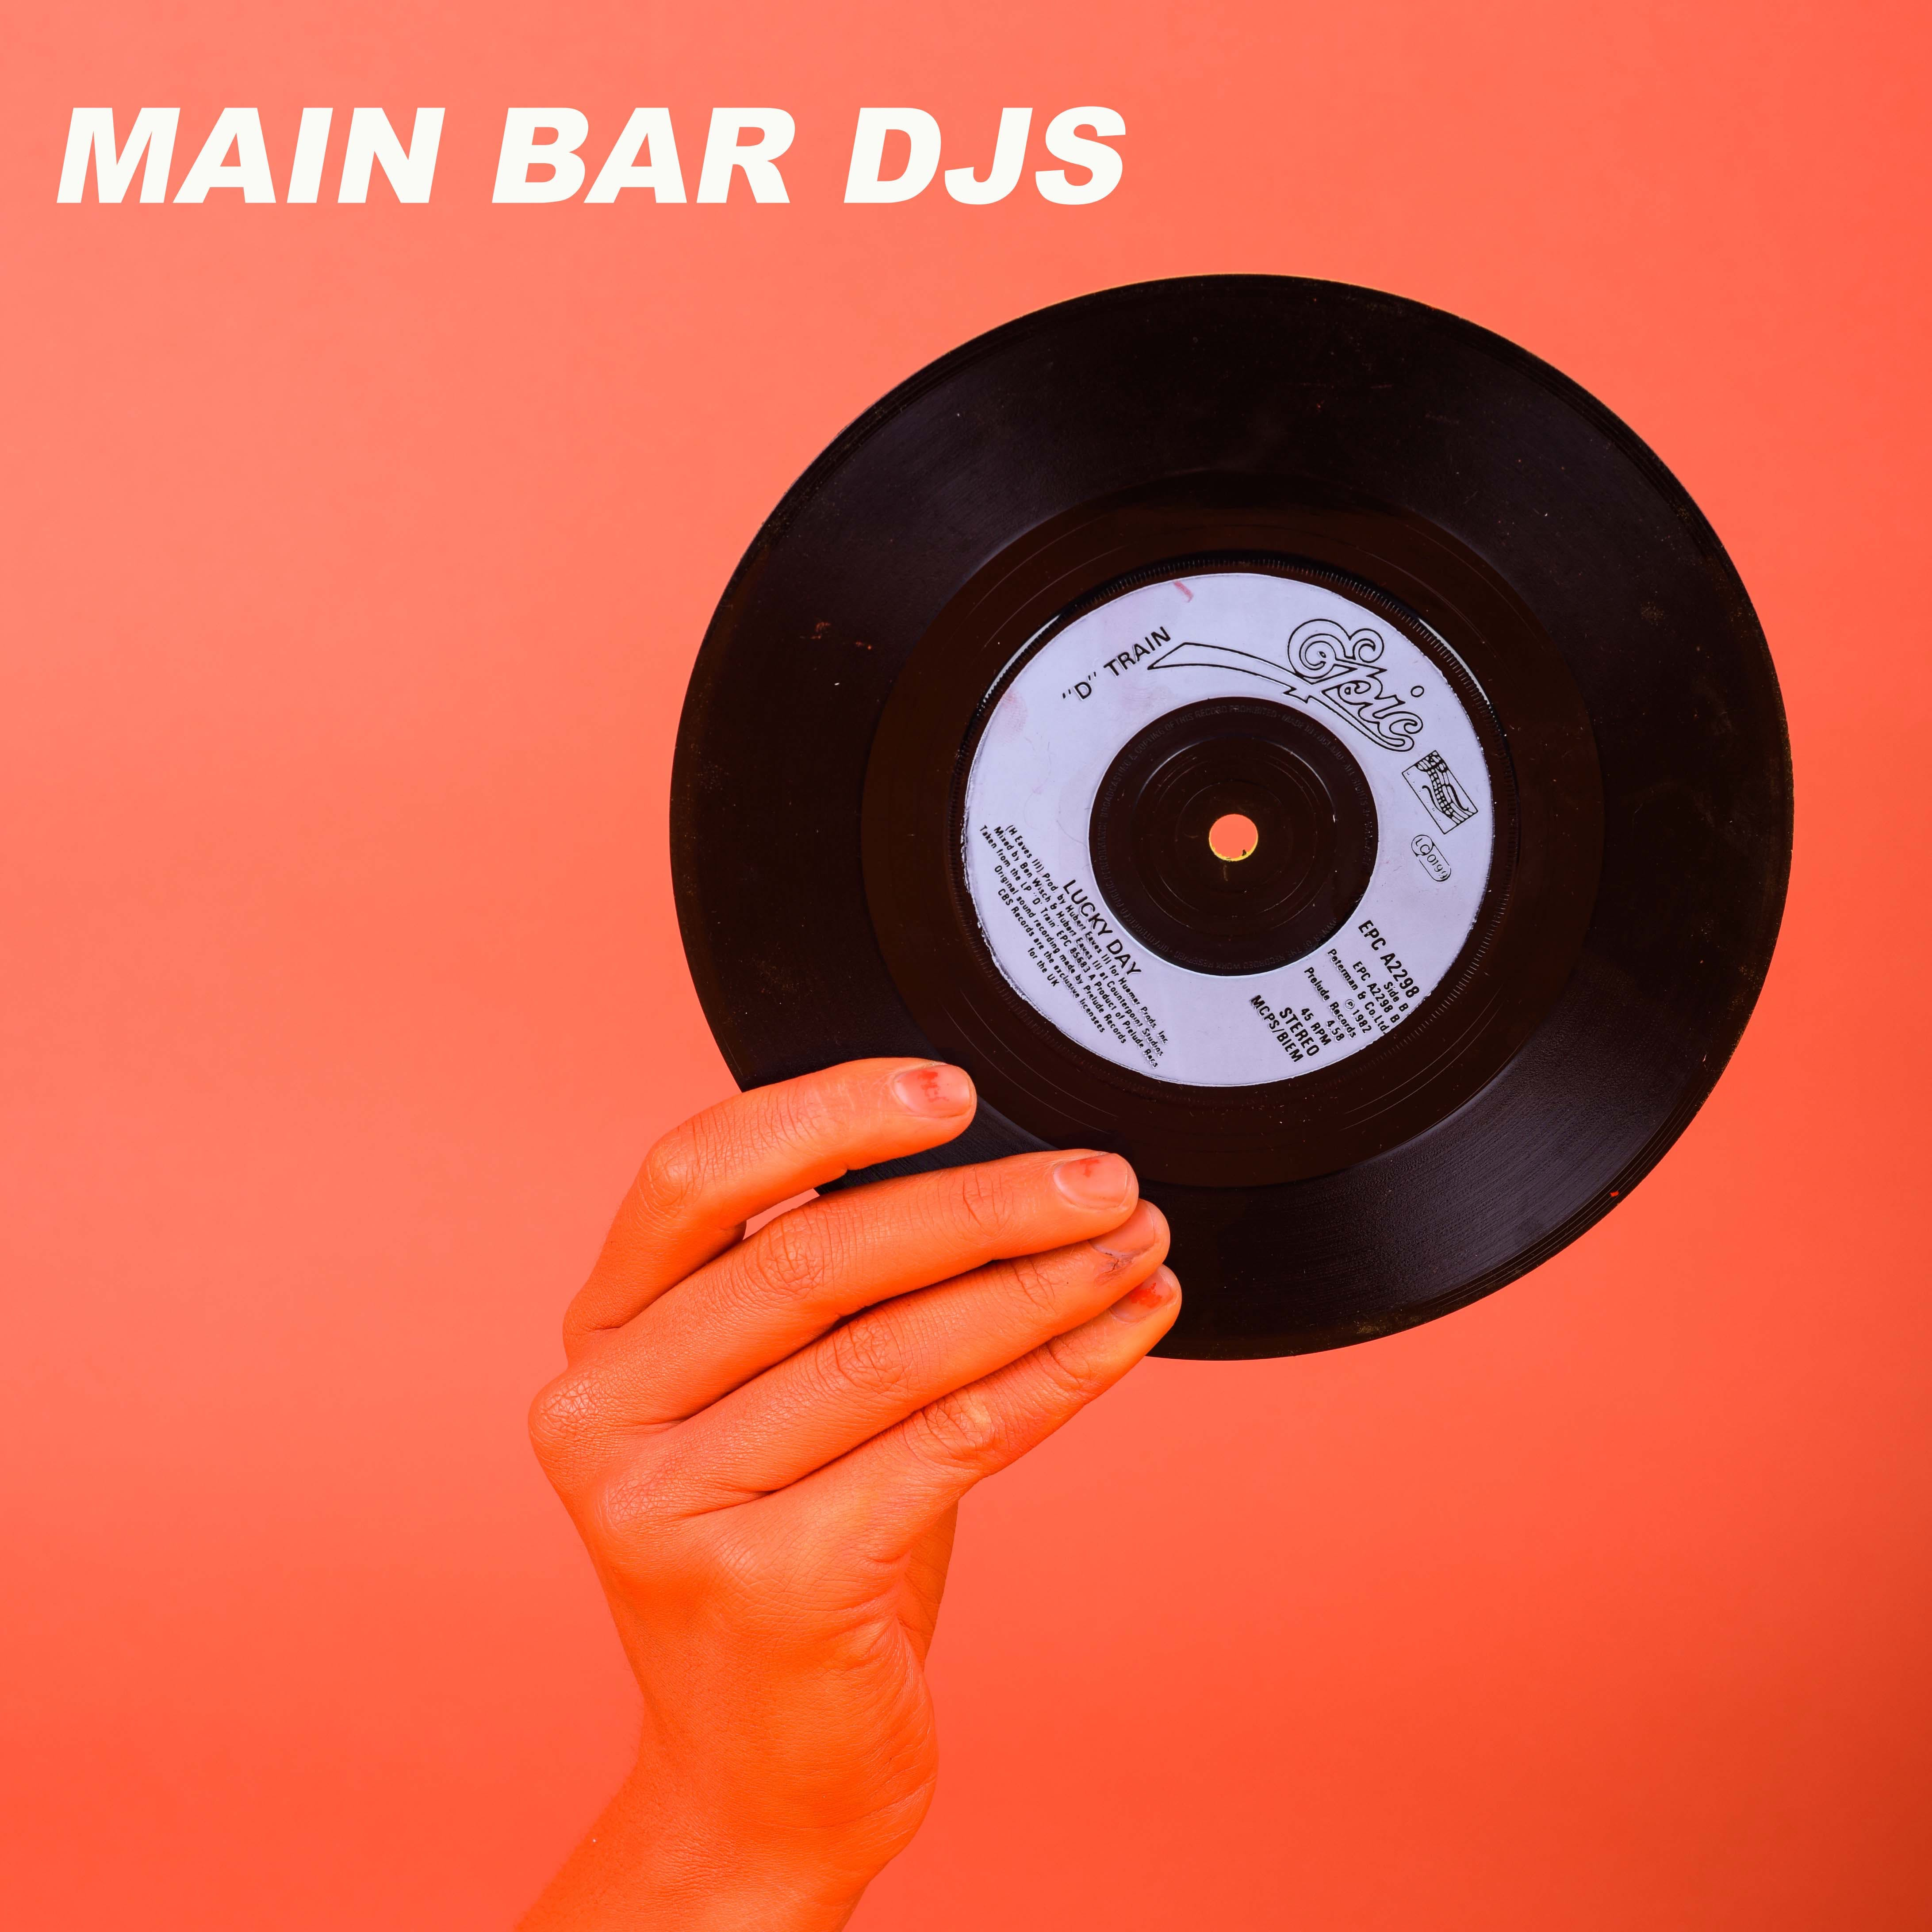 MAIN BAR DJS – BOOGIE BITCHES AND SUPER ELECTRIC